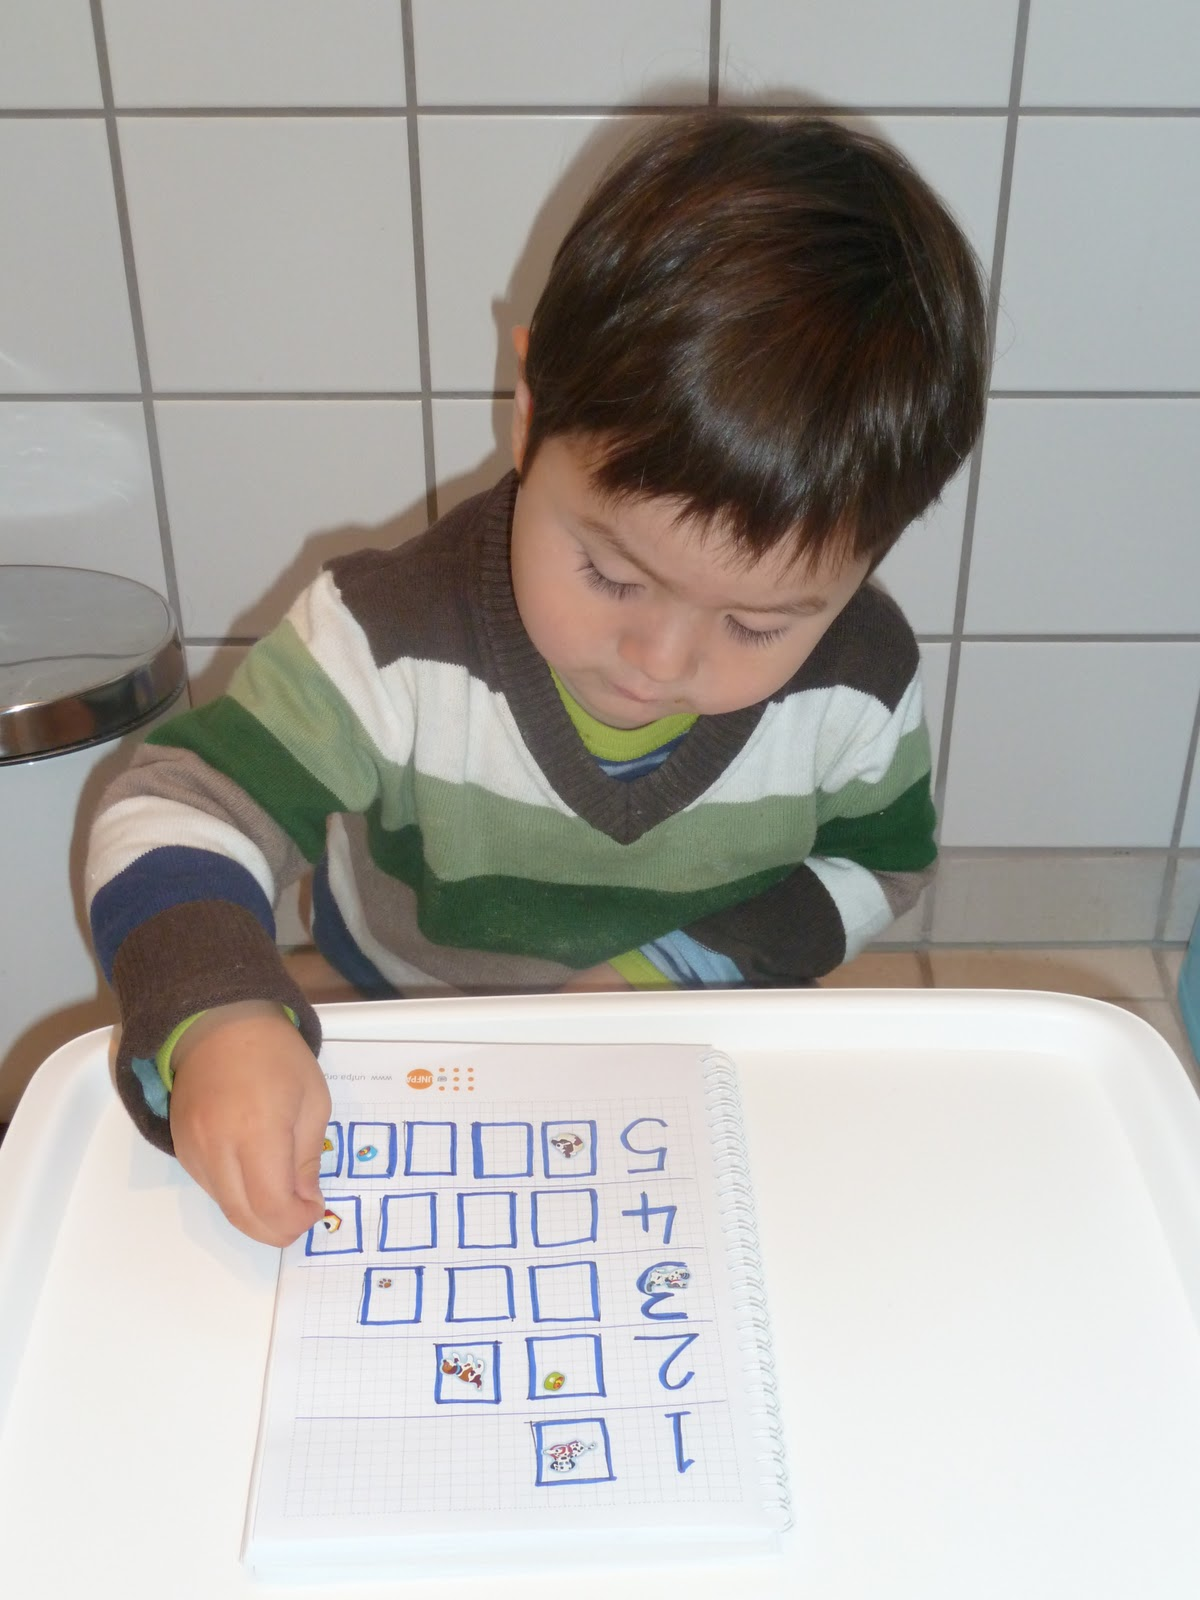 Family Fecs Montessori Activity Counting Objects With